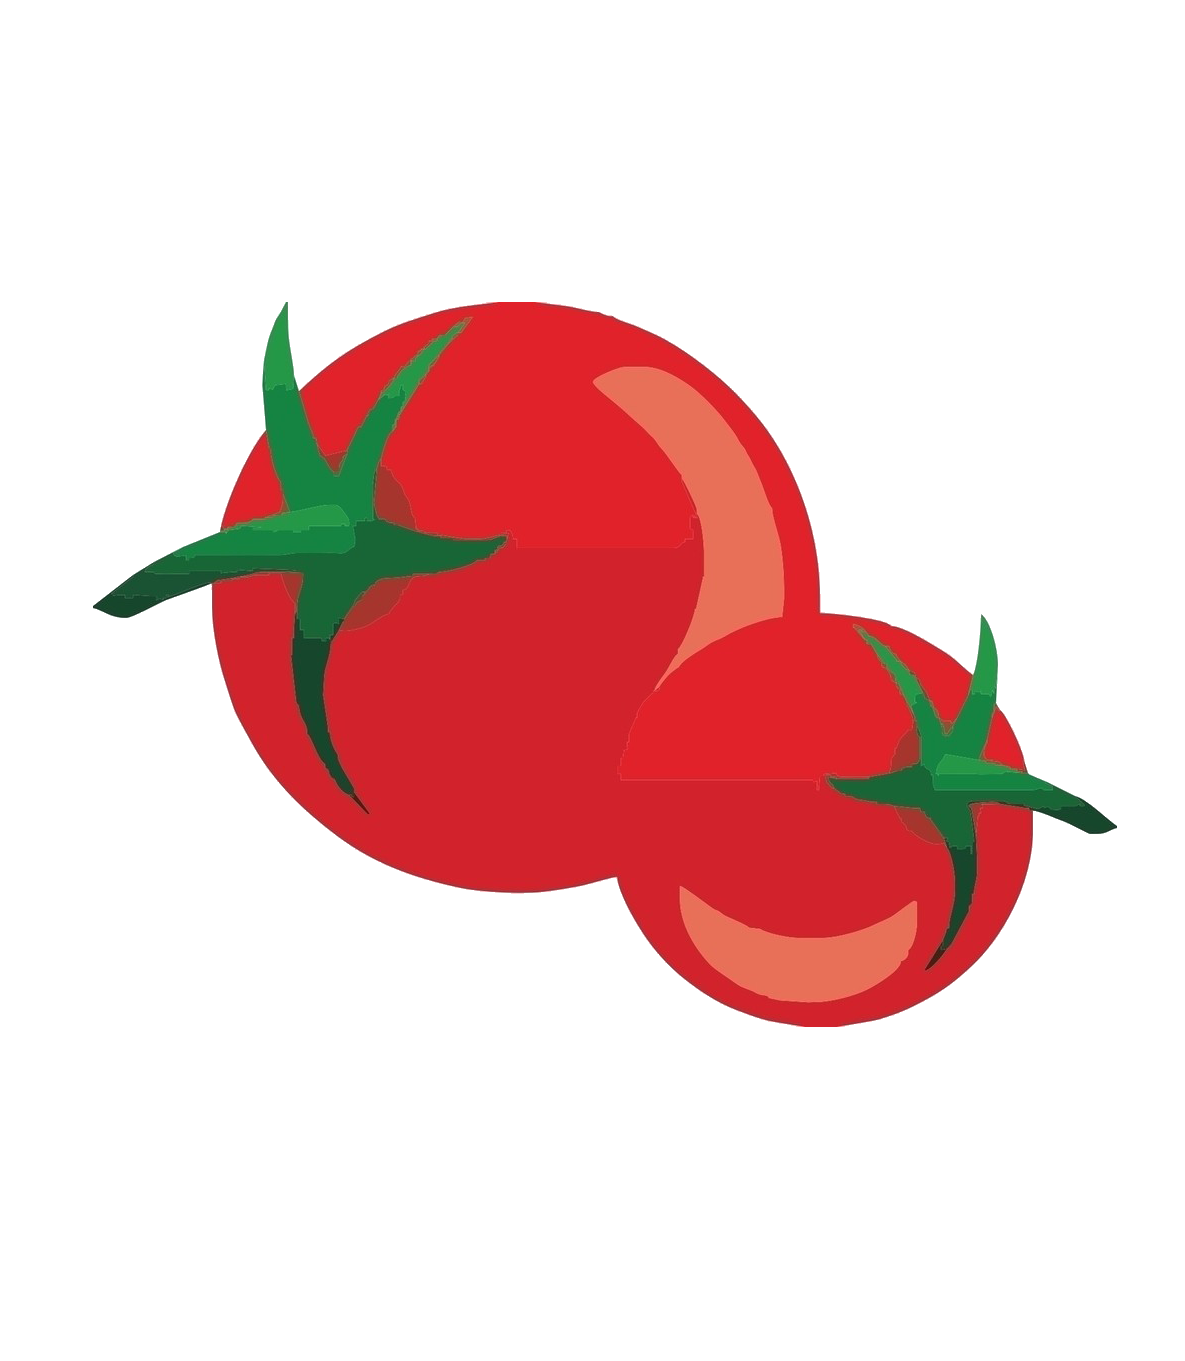 png transparent library Pizza cartoon transprent png. Nightshade drawing tomato flower